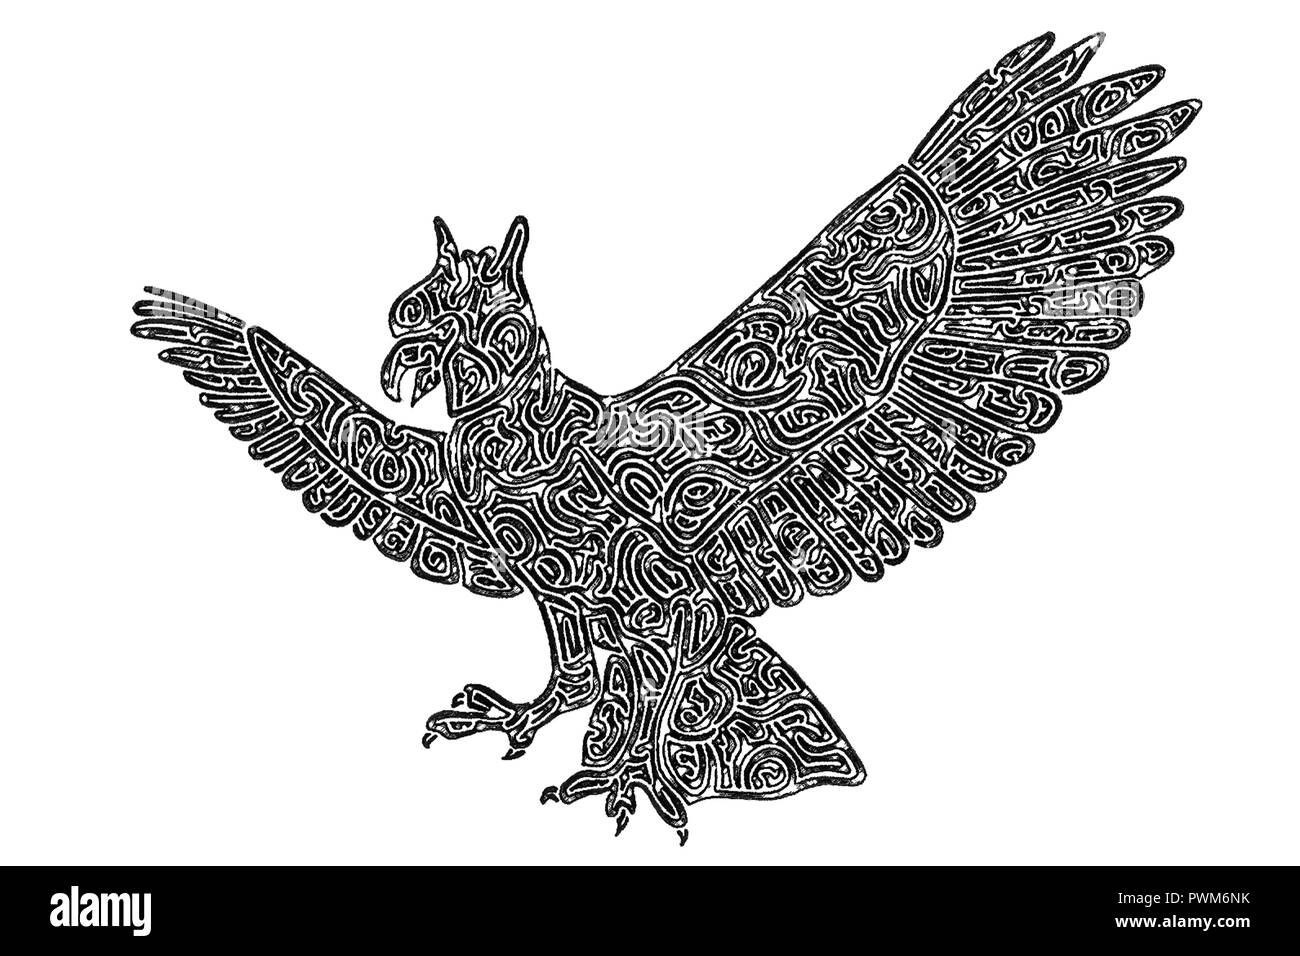 Illustration of flying harpy eagle attacking its prey with its claws black and white